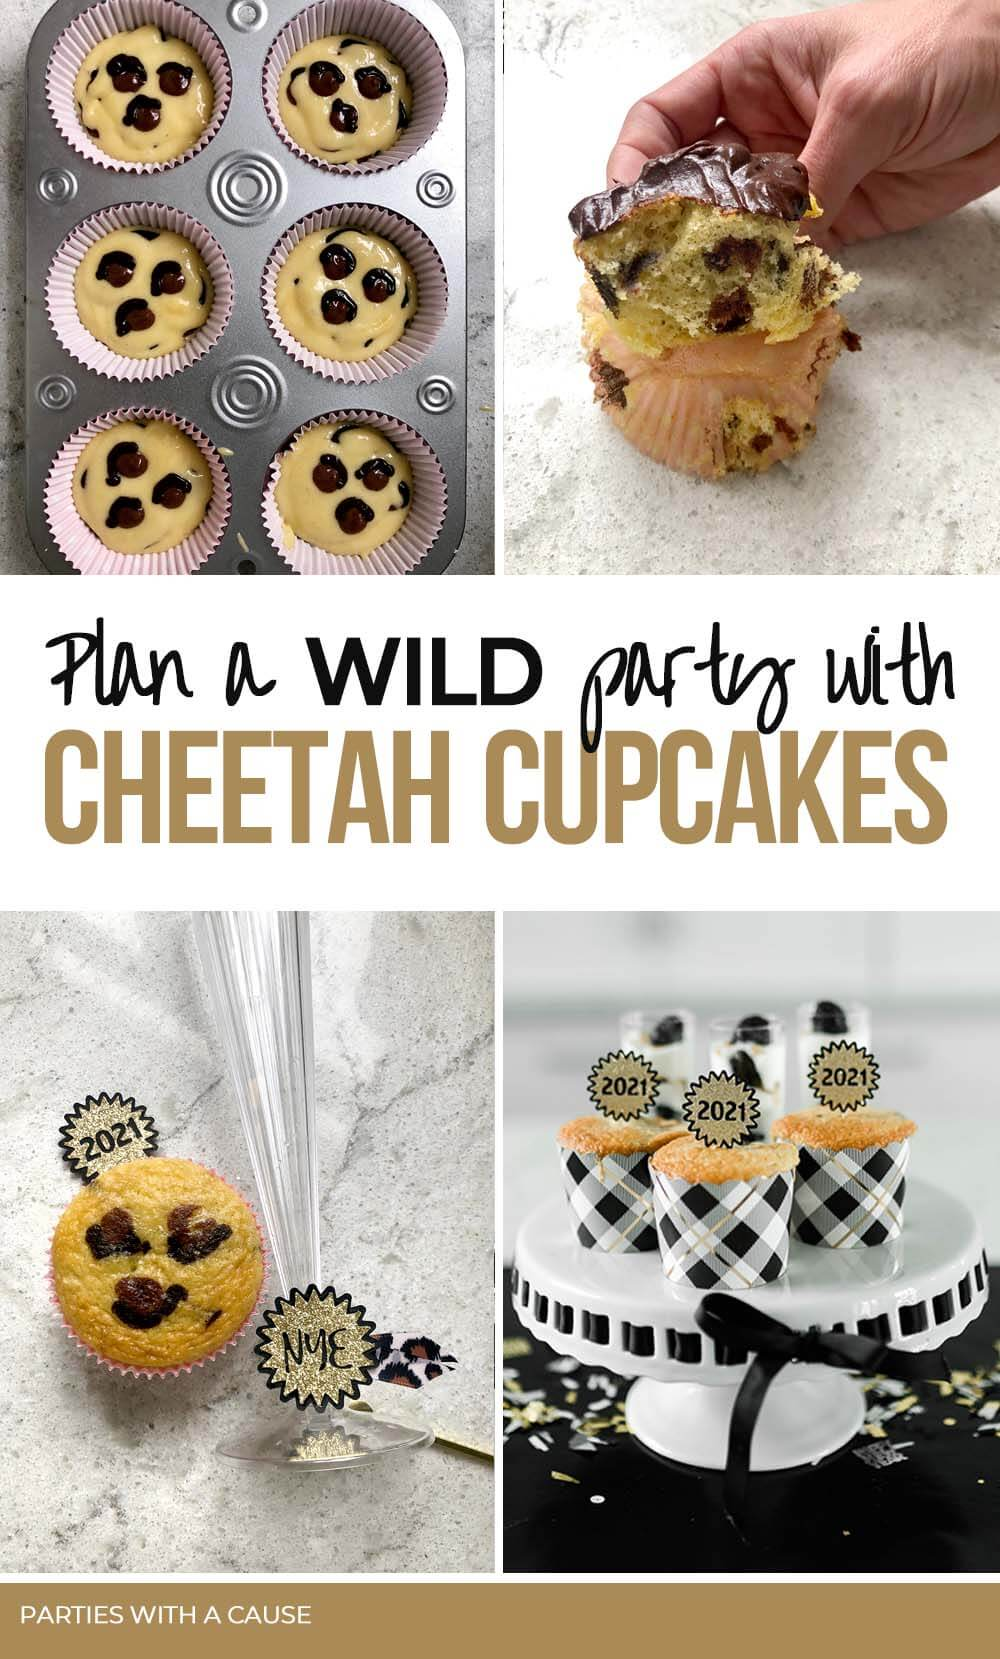 Plan a WILD safari party with cheetah cupcakes by Salt Lake Party Stylist